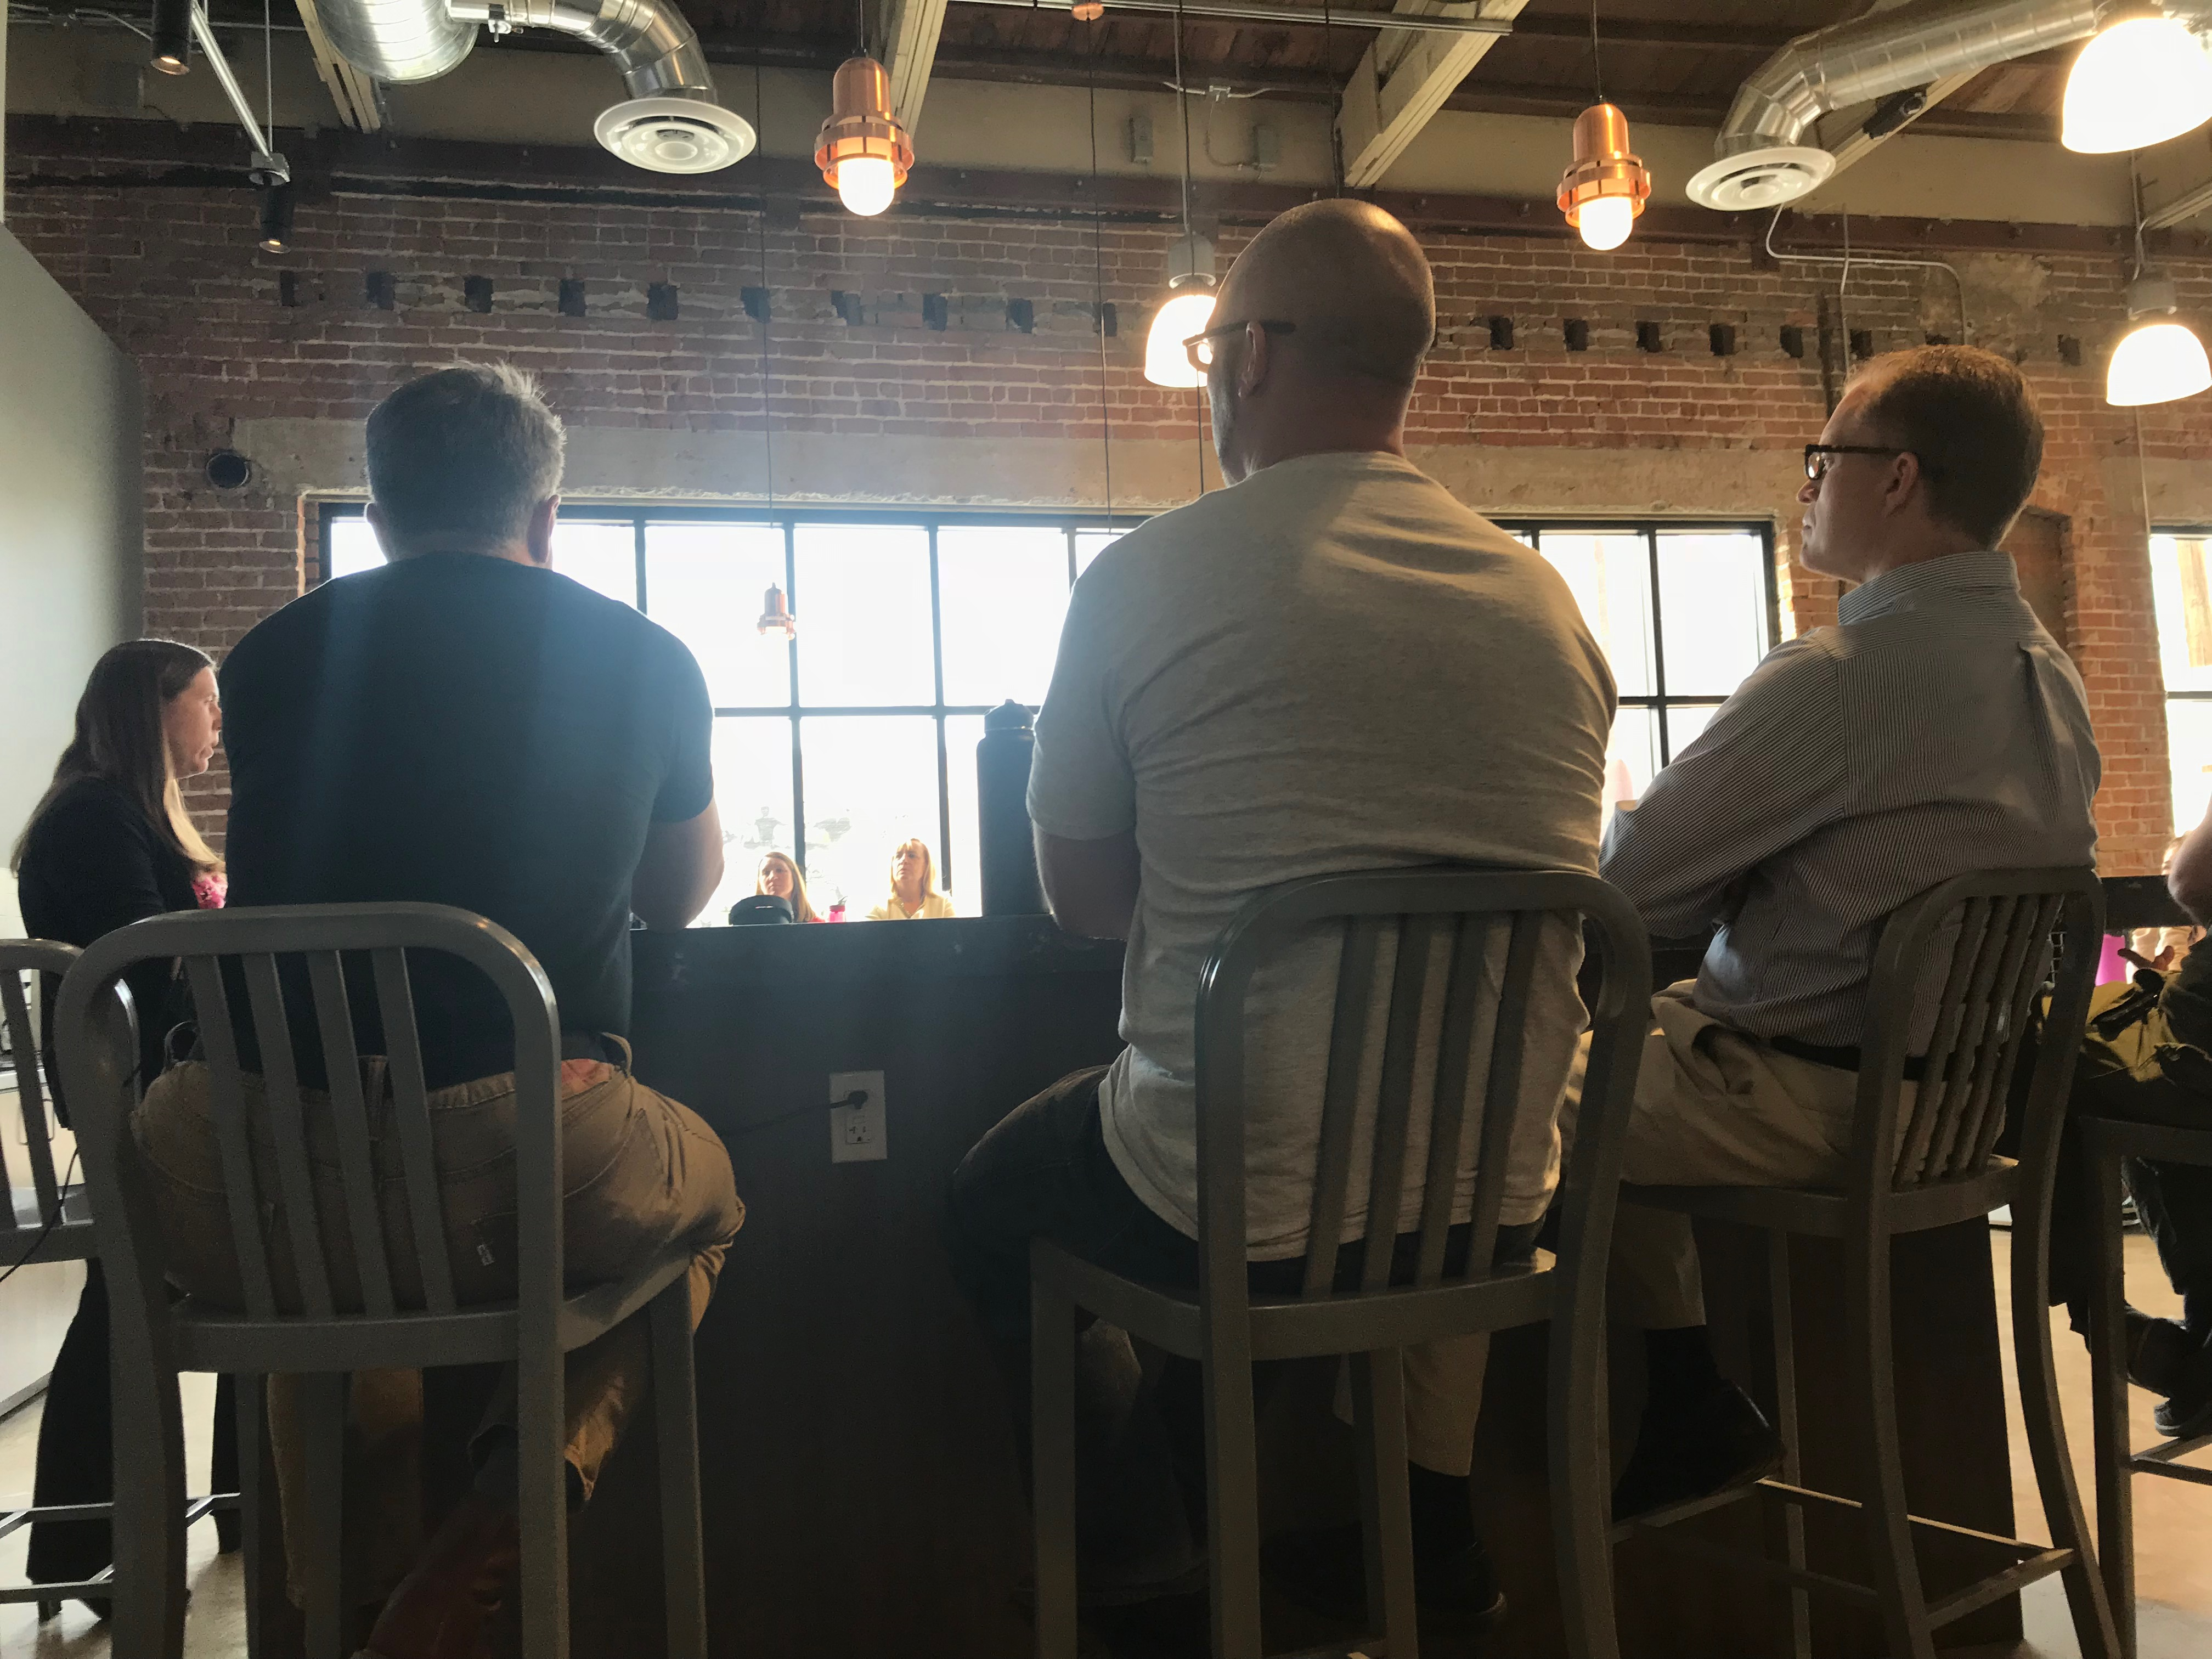 Employees sit on bar stools around the counter in the Ideas Start Here cafe at STC during a meeting.